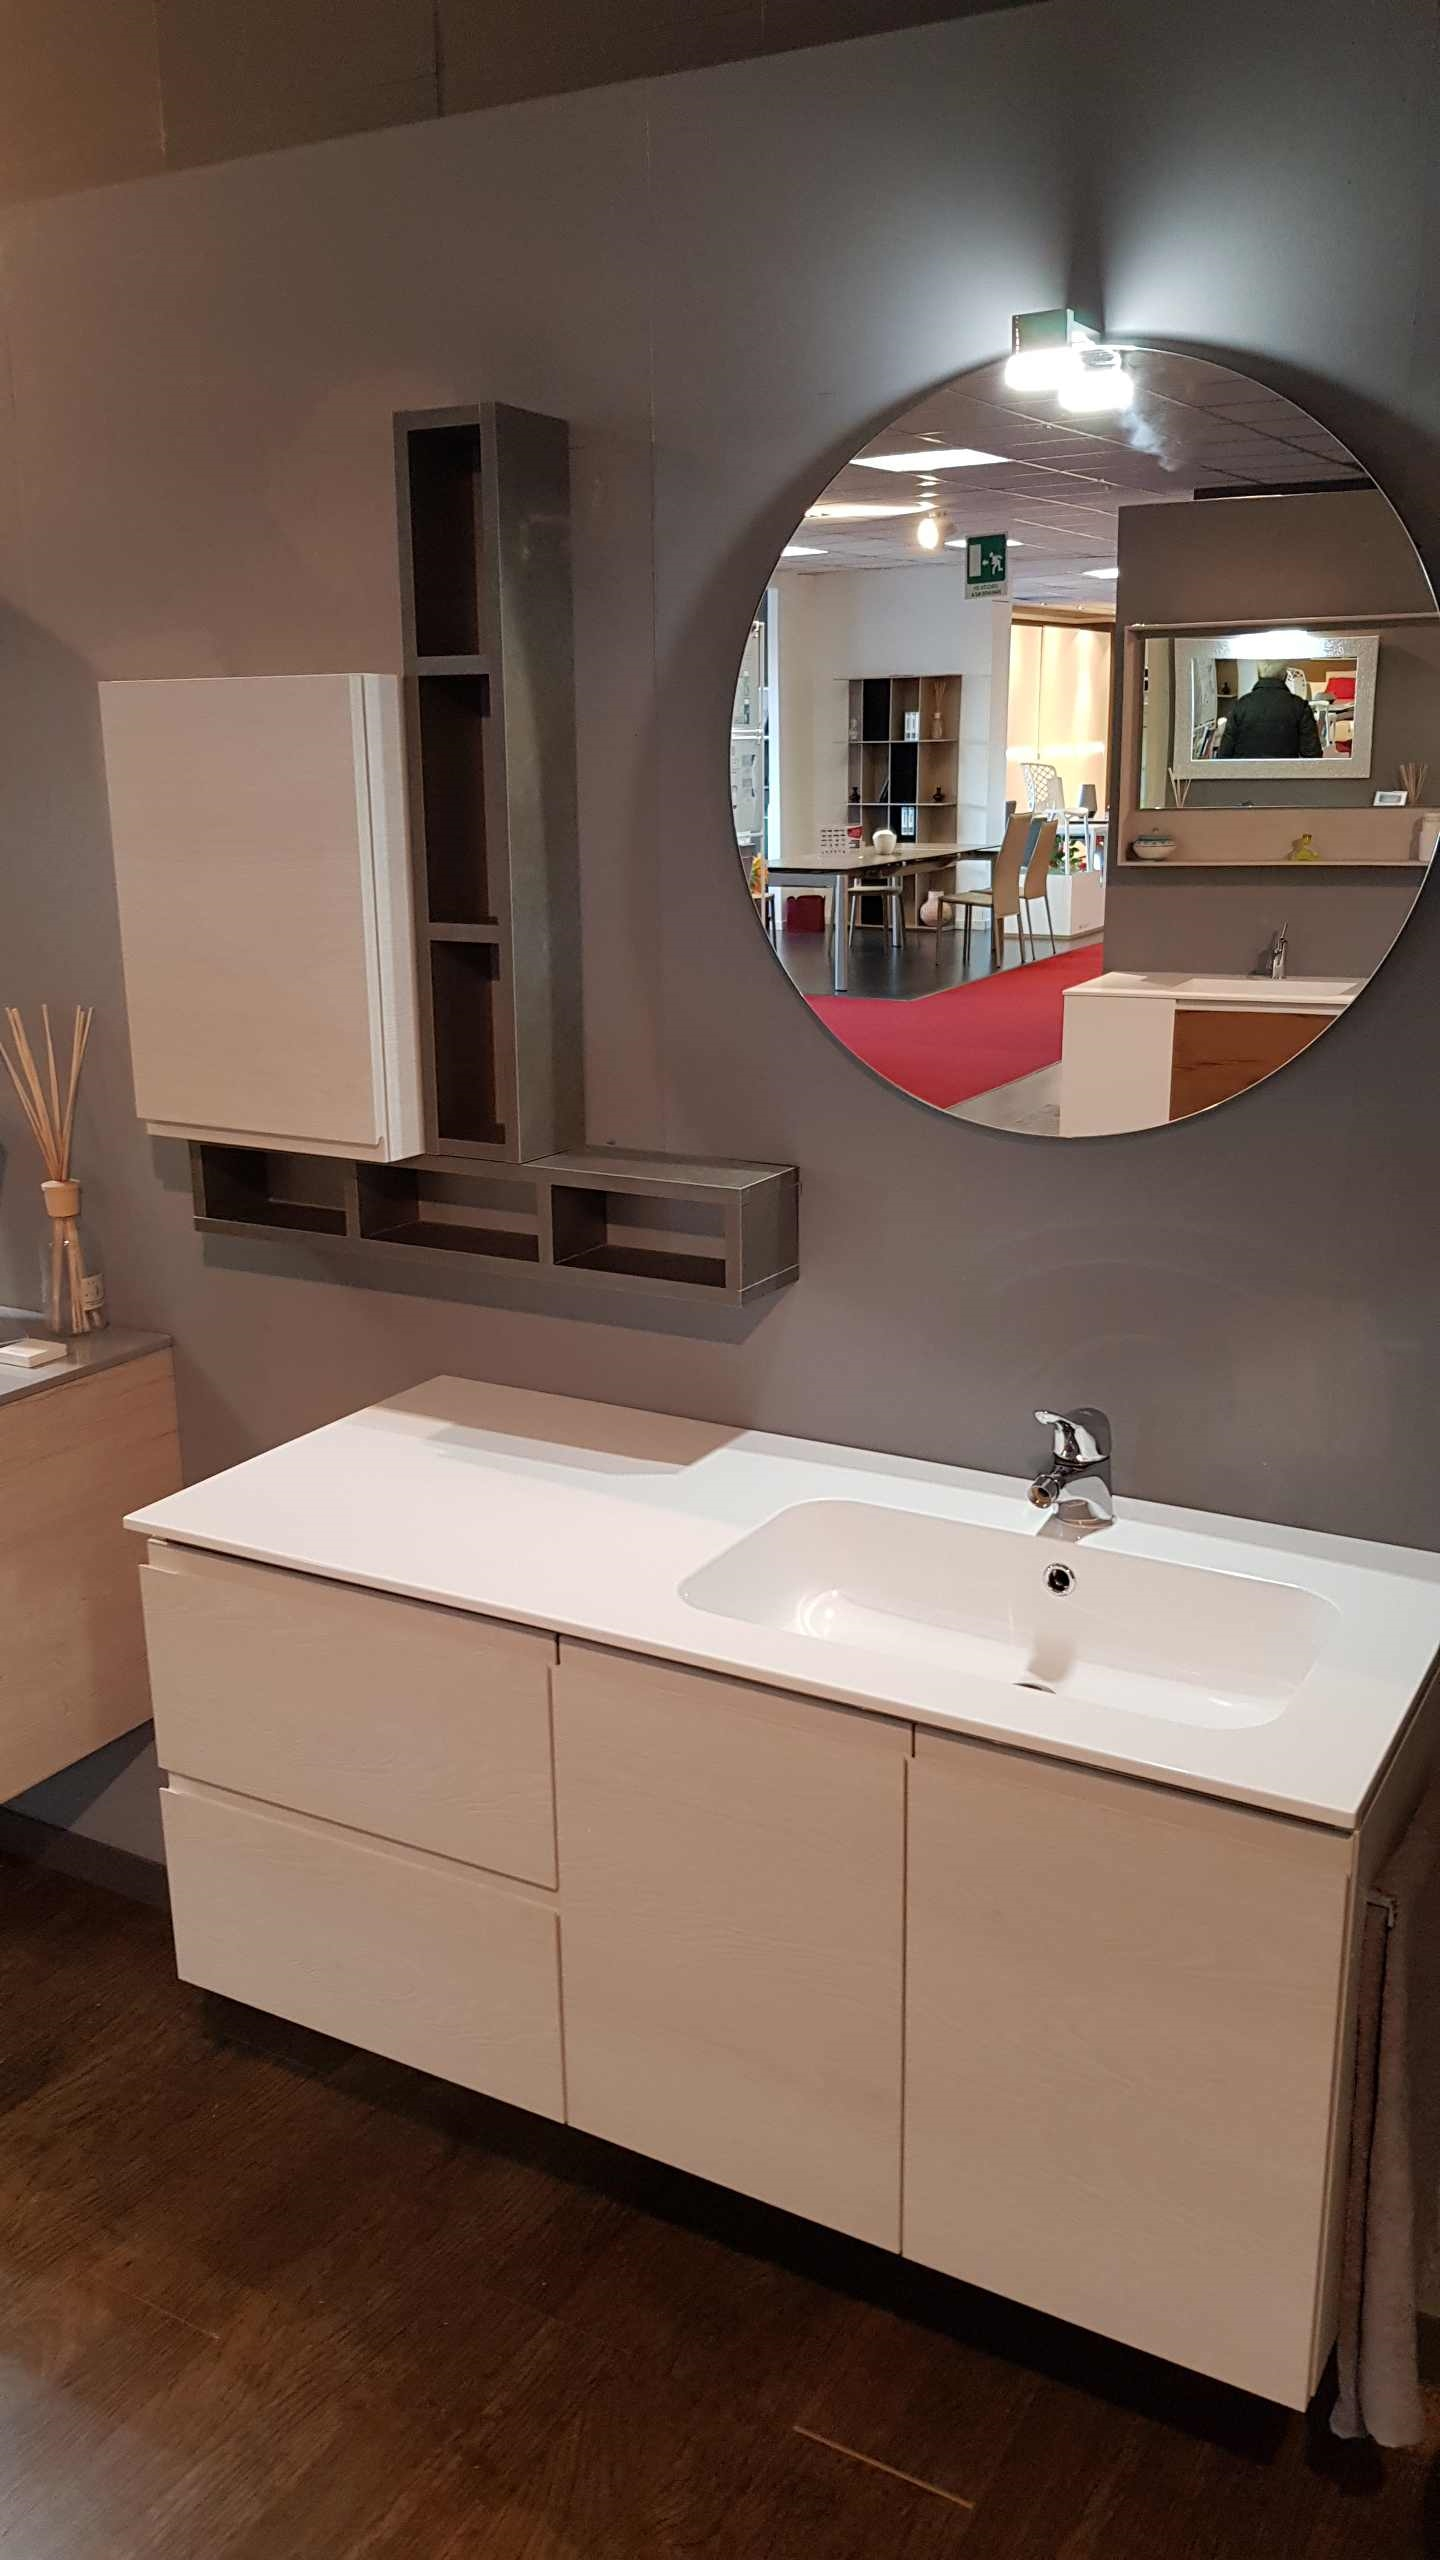 Outlet bagno compab in offerta con luce a led arredo for Arredo bagno offerta